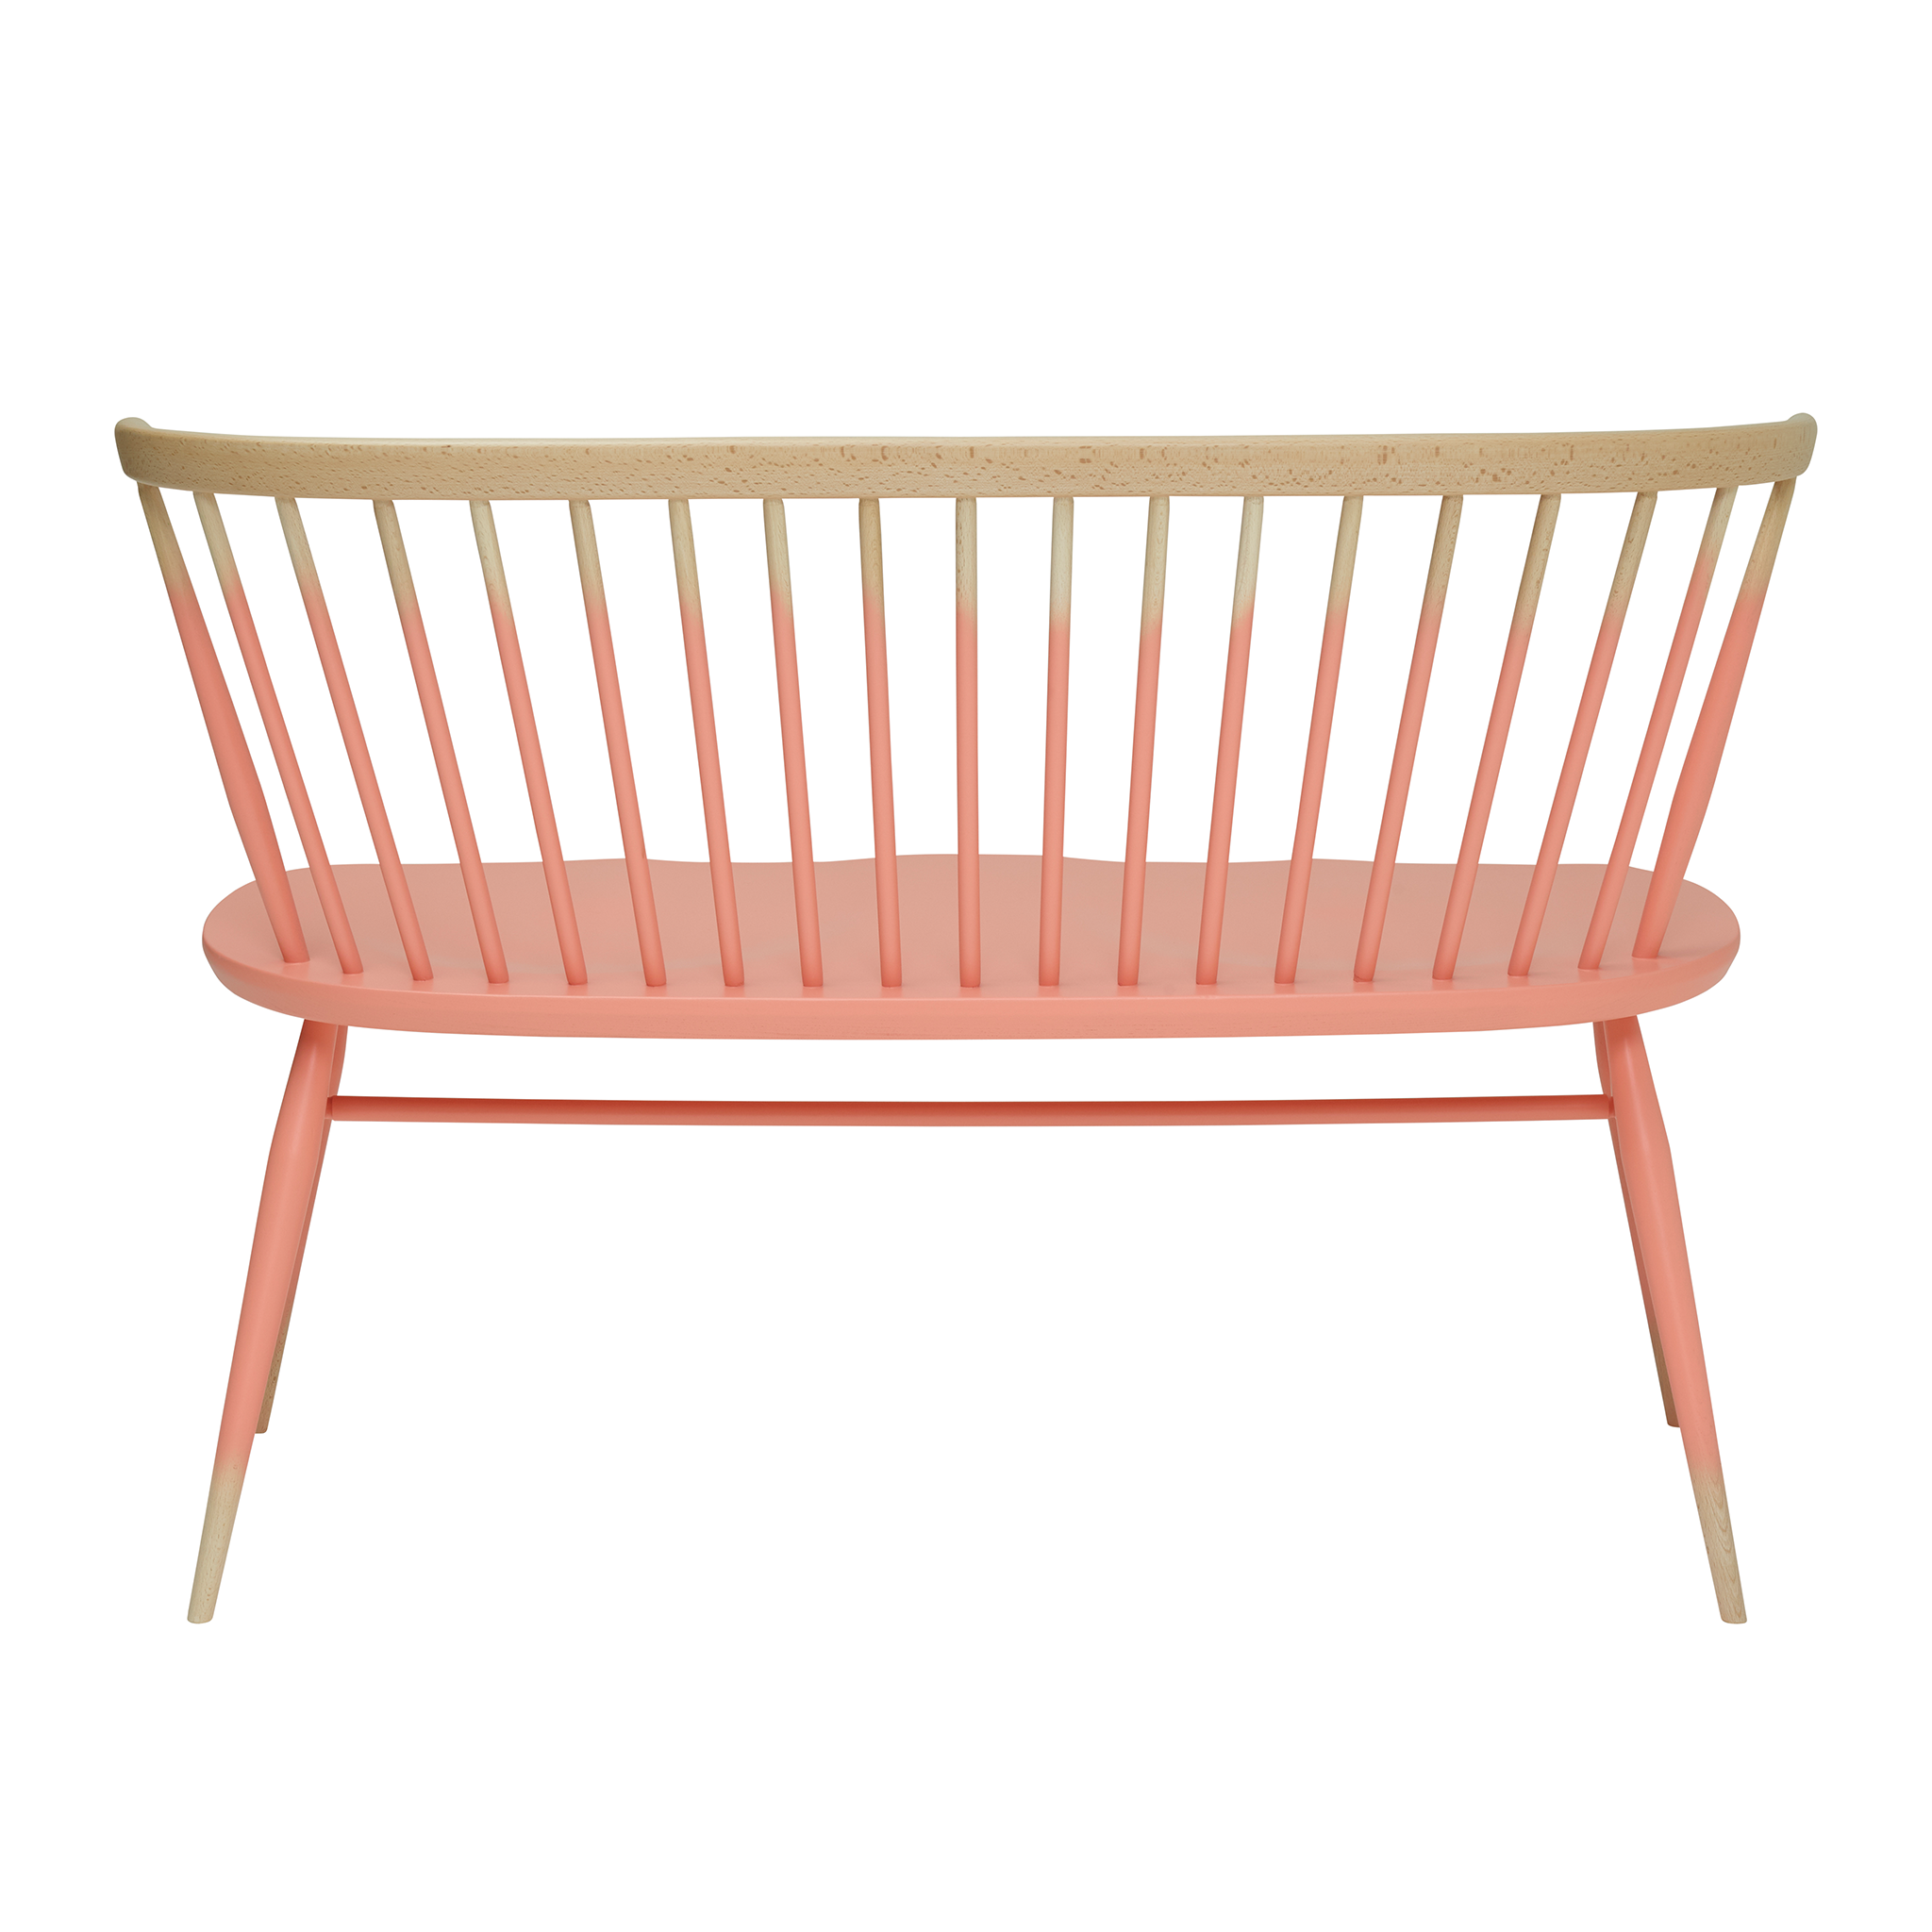 Originals Love Seat Half Painted by Ercol